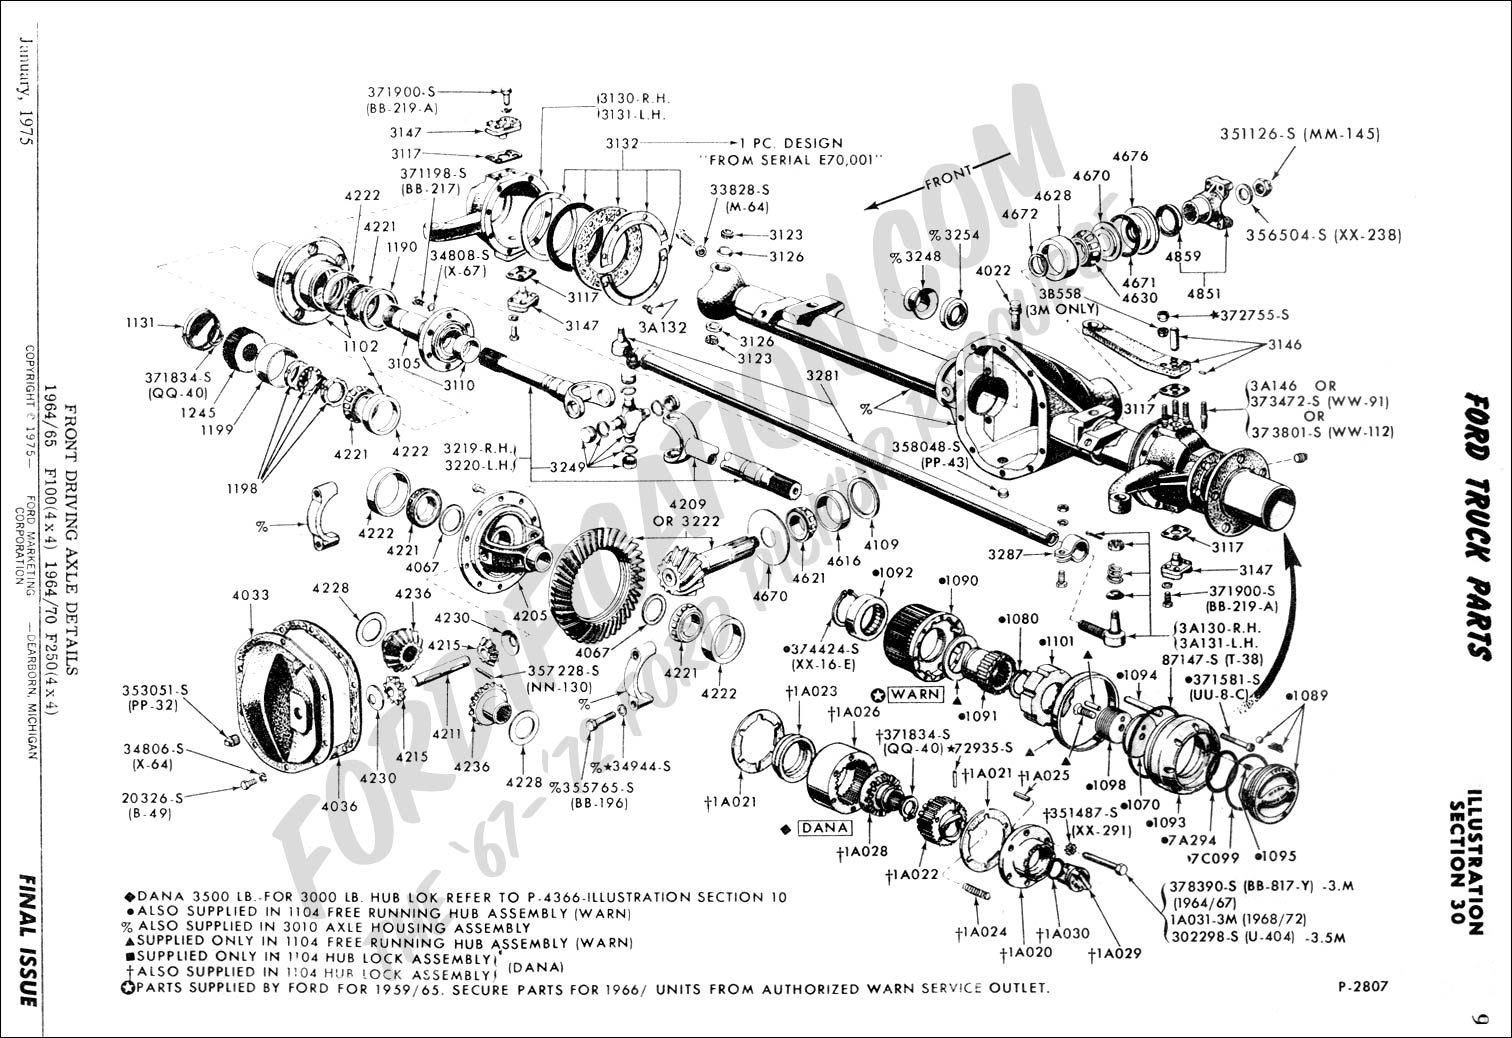 Front/Rear Axle Assemblies and Suspensions